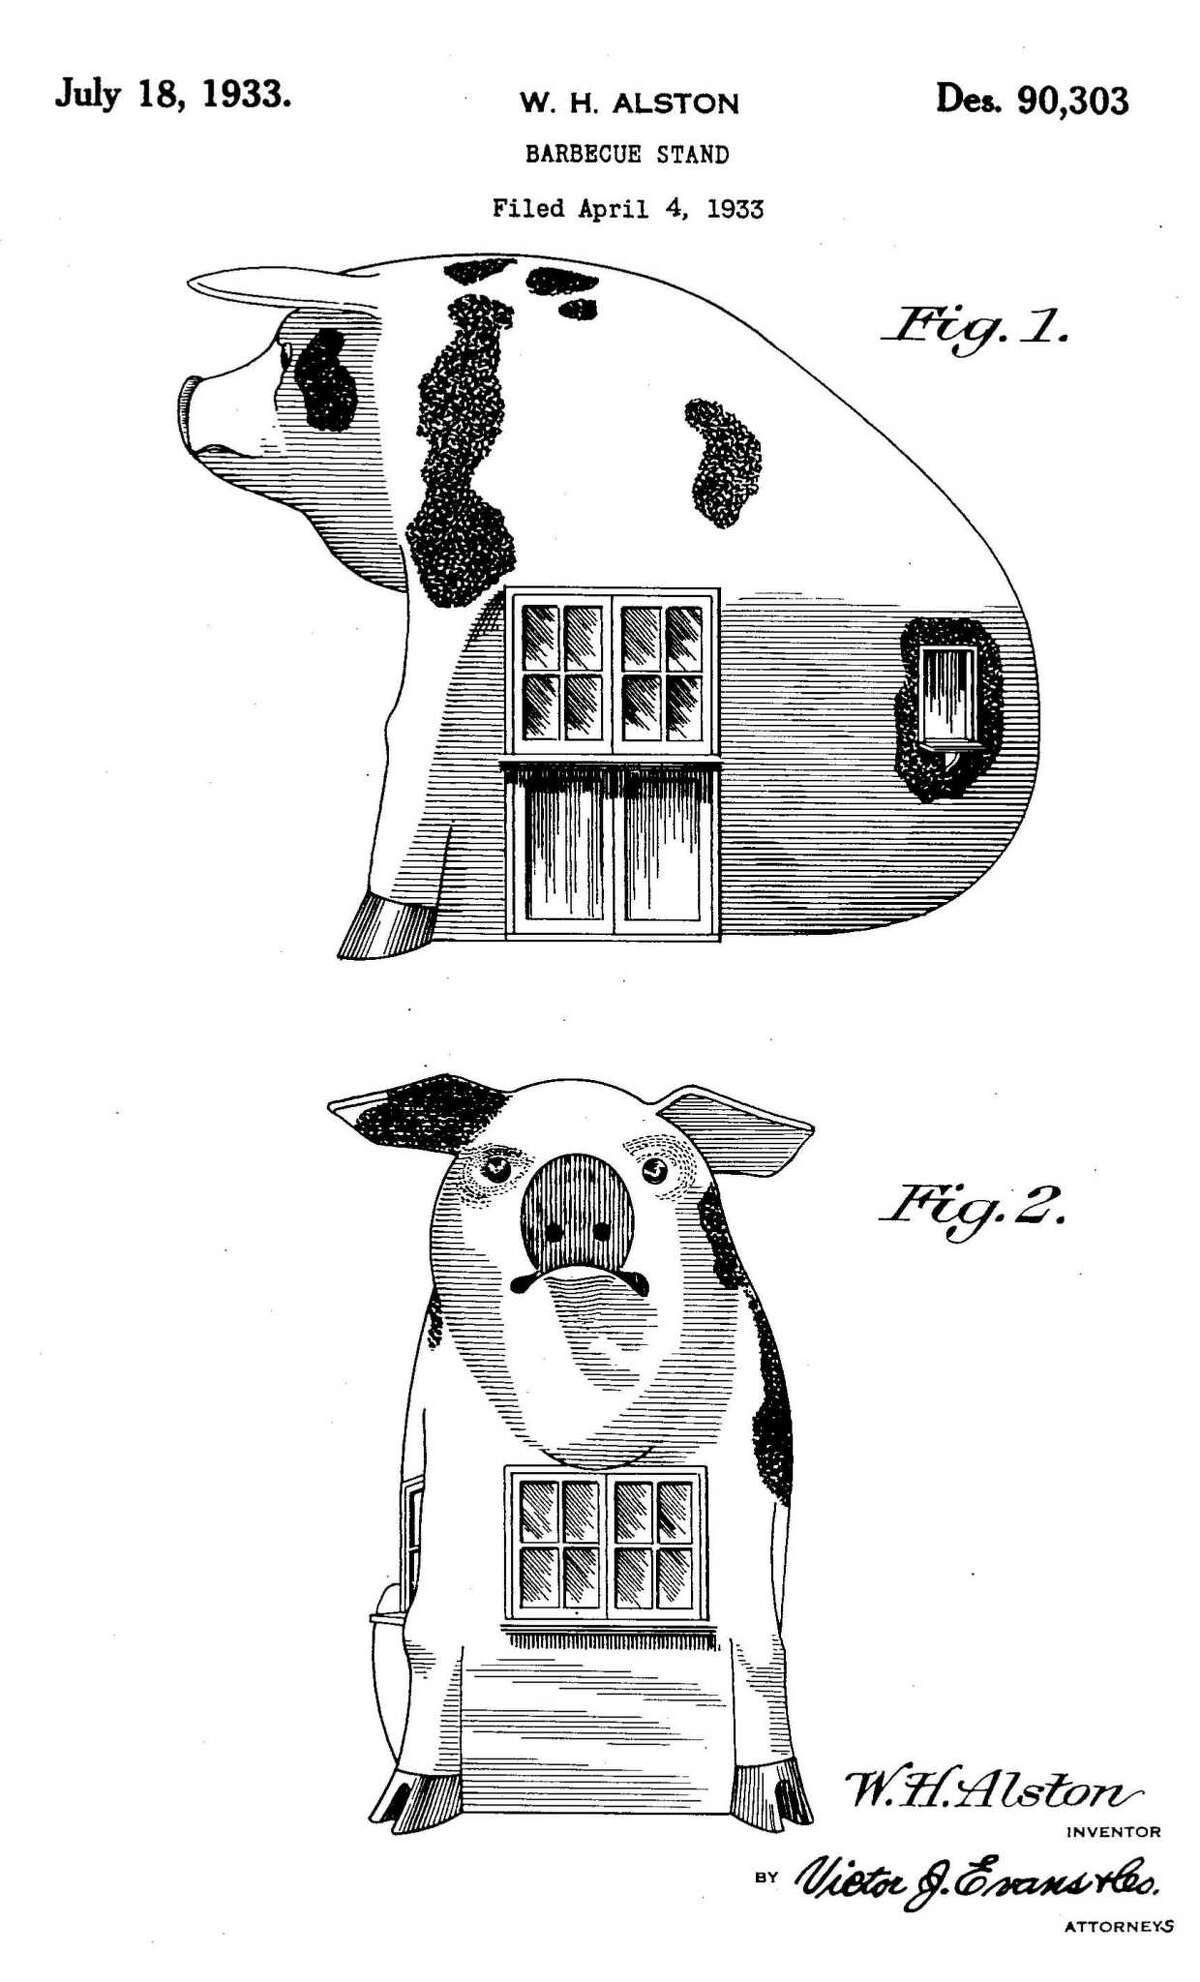 Illustrations of a pig-shaped barbecue stand from a 1933 patent application by William H. Alston of San Antonio. A similar structure at the old Pig Stand location in Southtown was reportedly built in 1935.